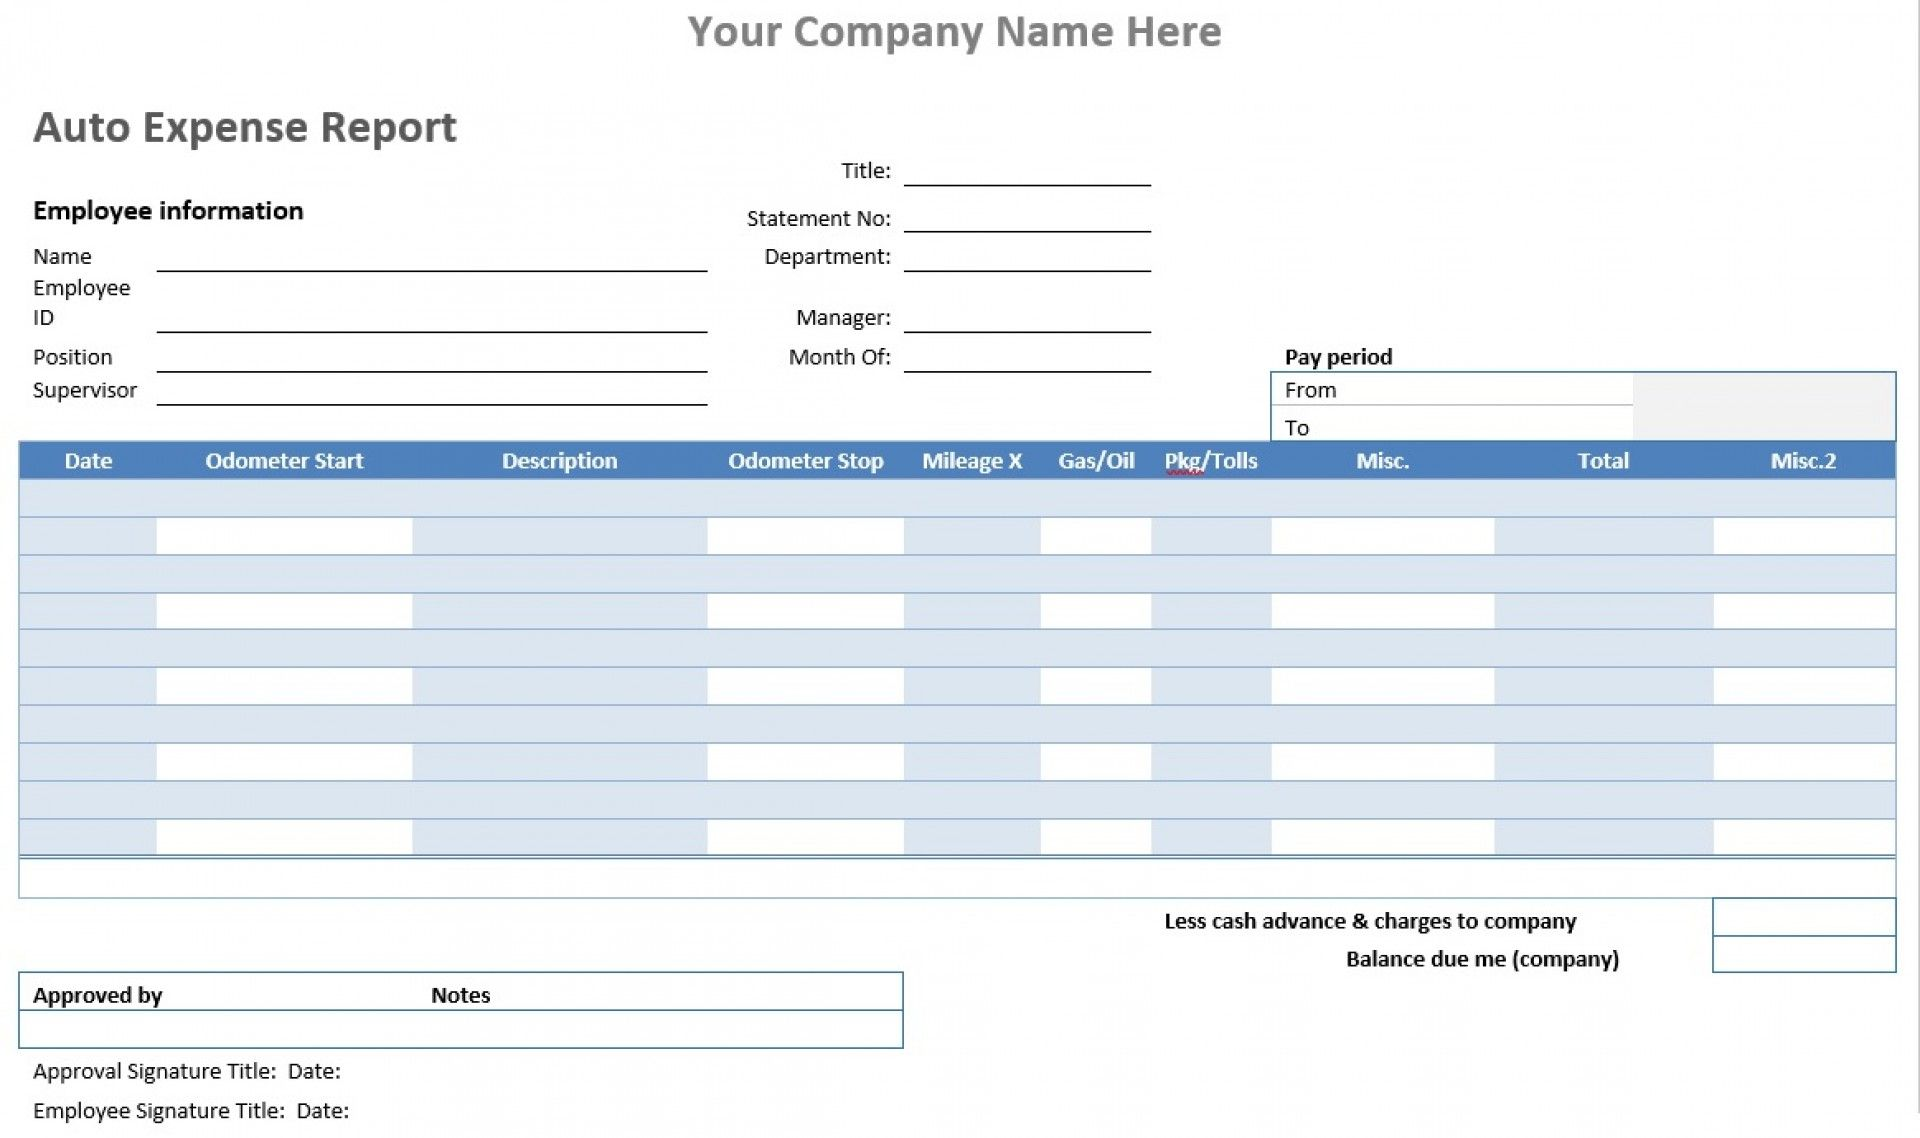 001 Auto Expense Report Template Ideas Free Microsoft Top Within Gas Mileage Expense Report Template Best Word Template Report Template Invoice Template Word